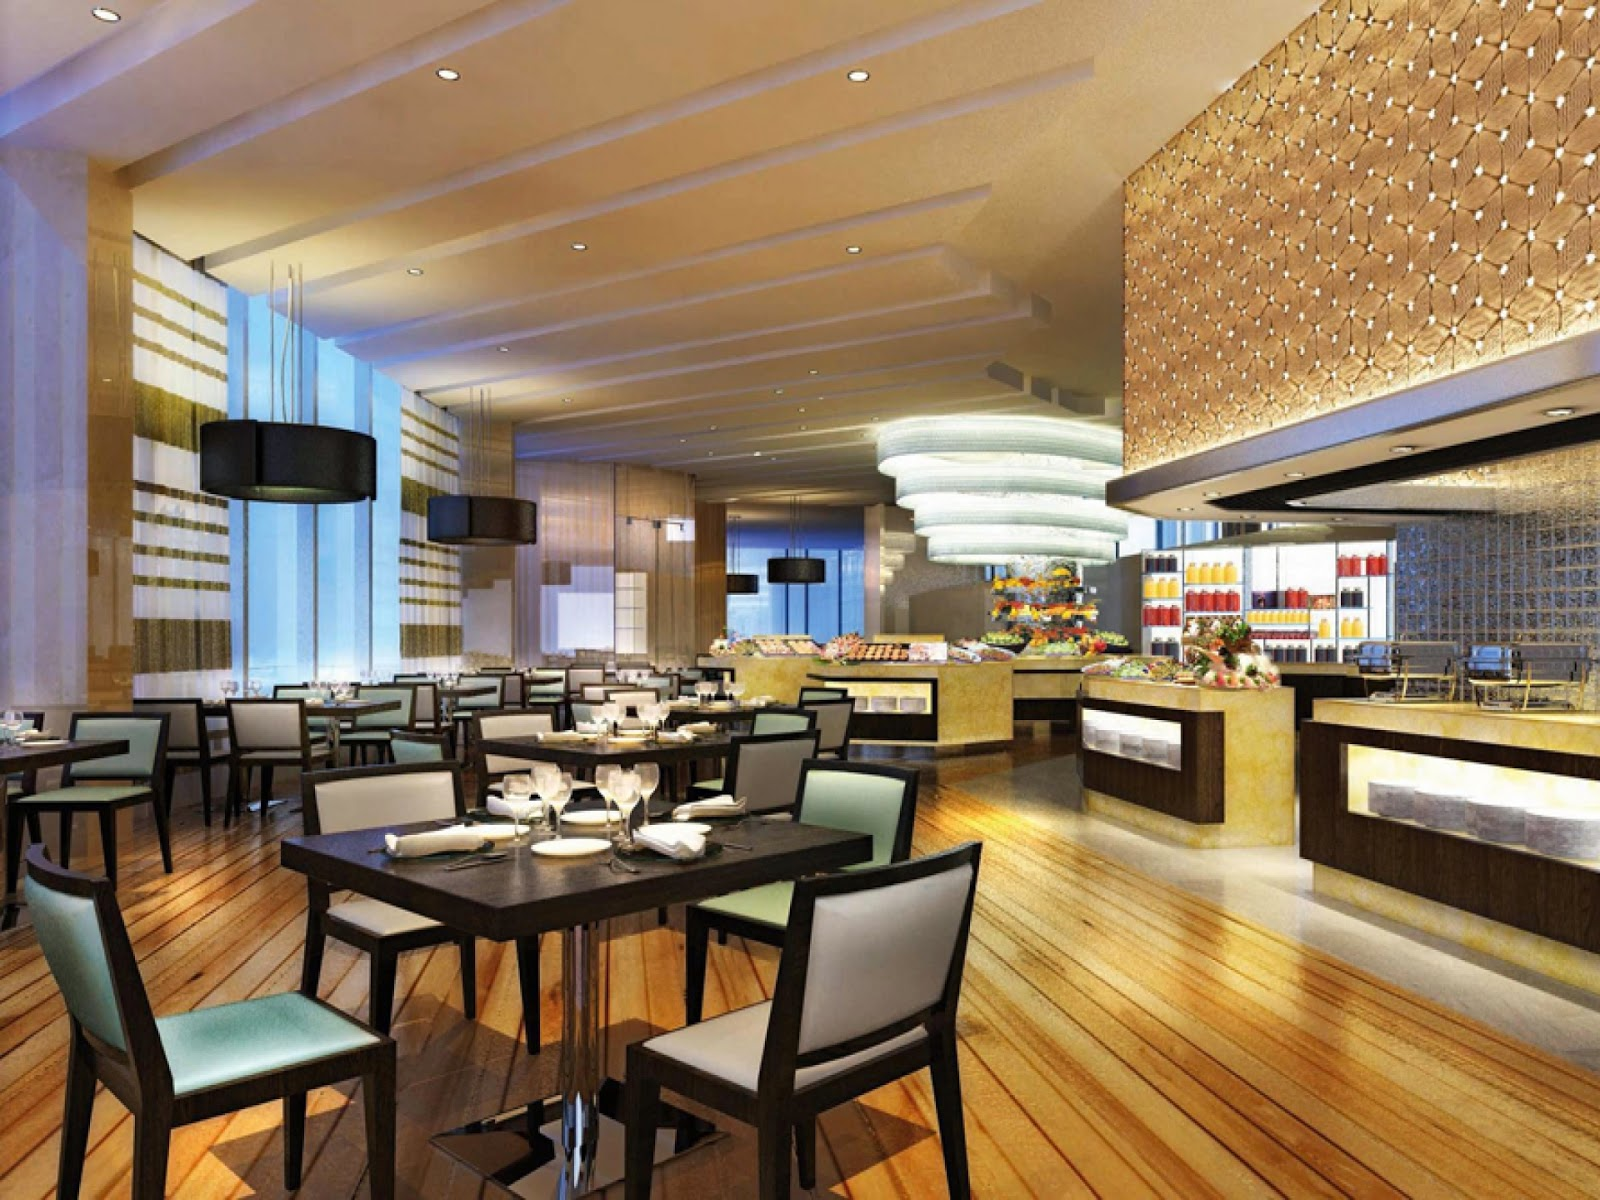 Interior design kitchen restaurant interior design - Interior design for hotels and restaurants ...